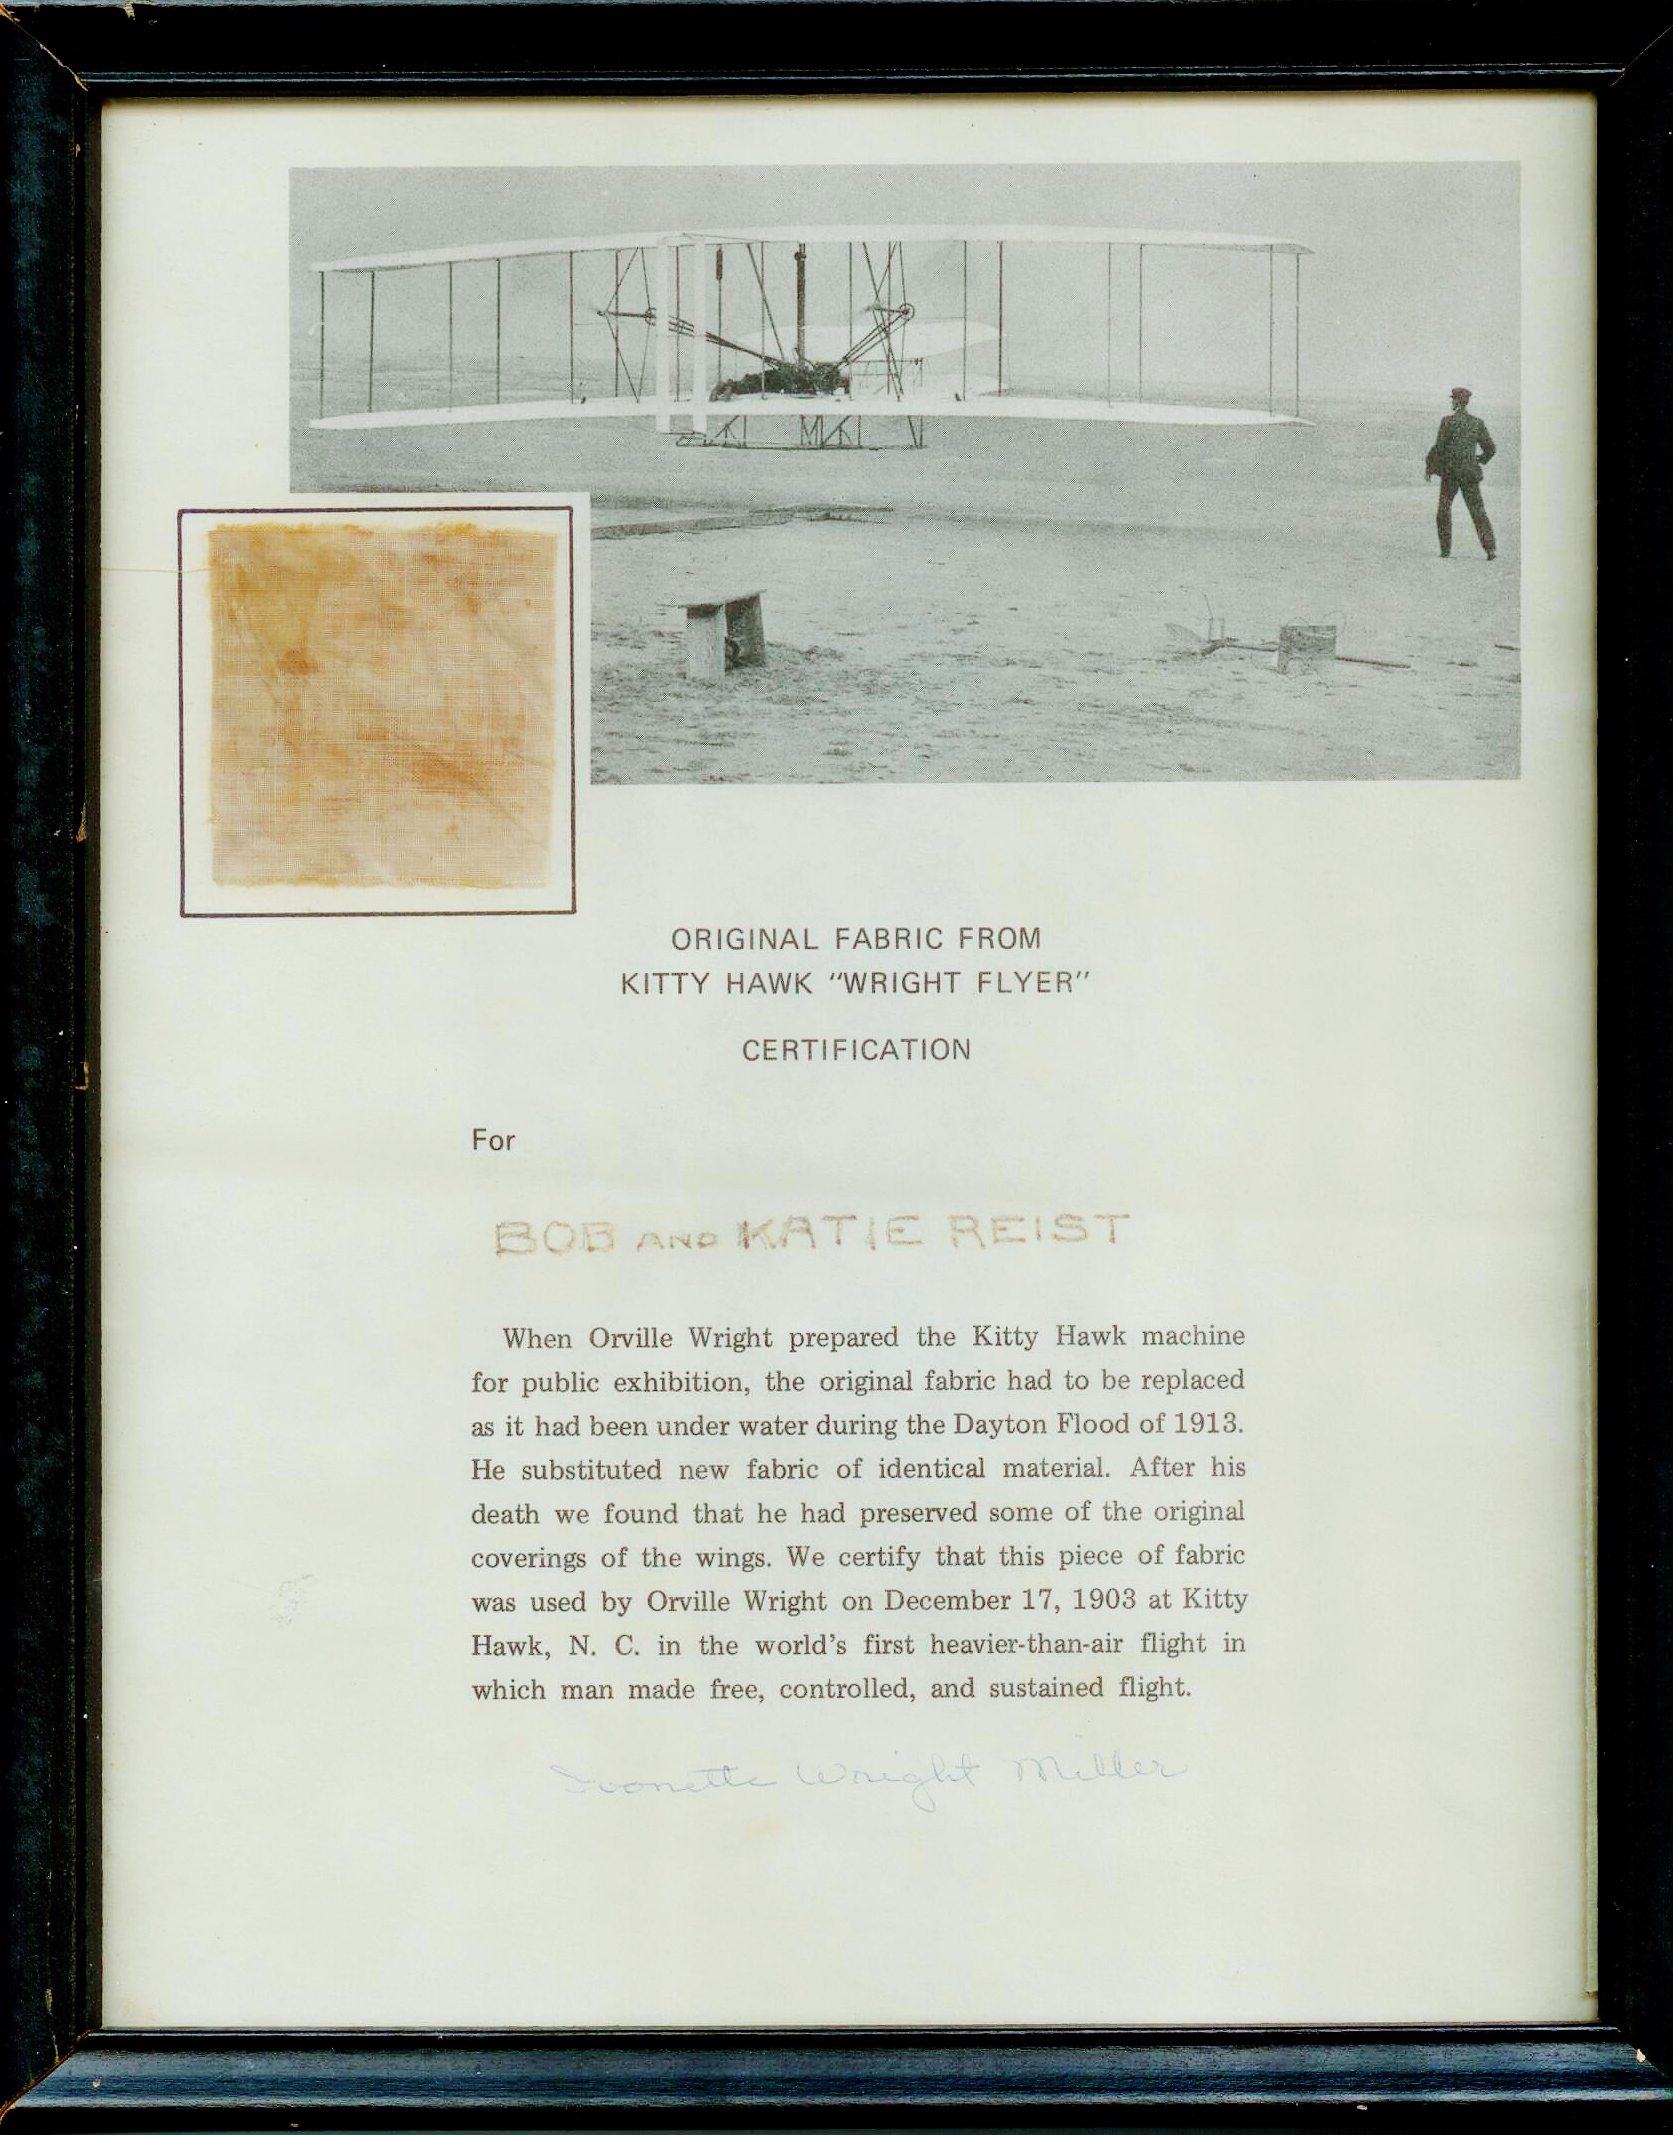 First Flight Kitty Hawk 1903 within lot detail - historic fabric from the wright brothers kitty hawk